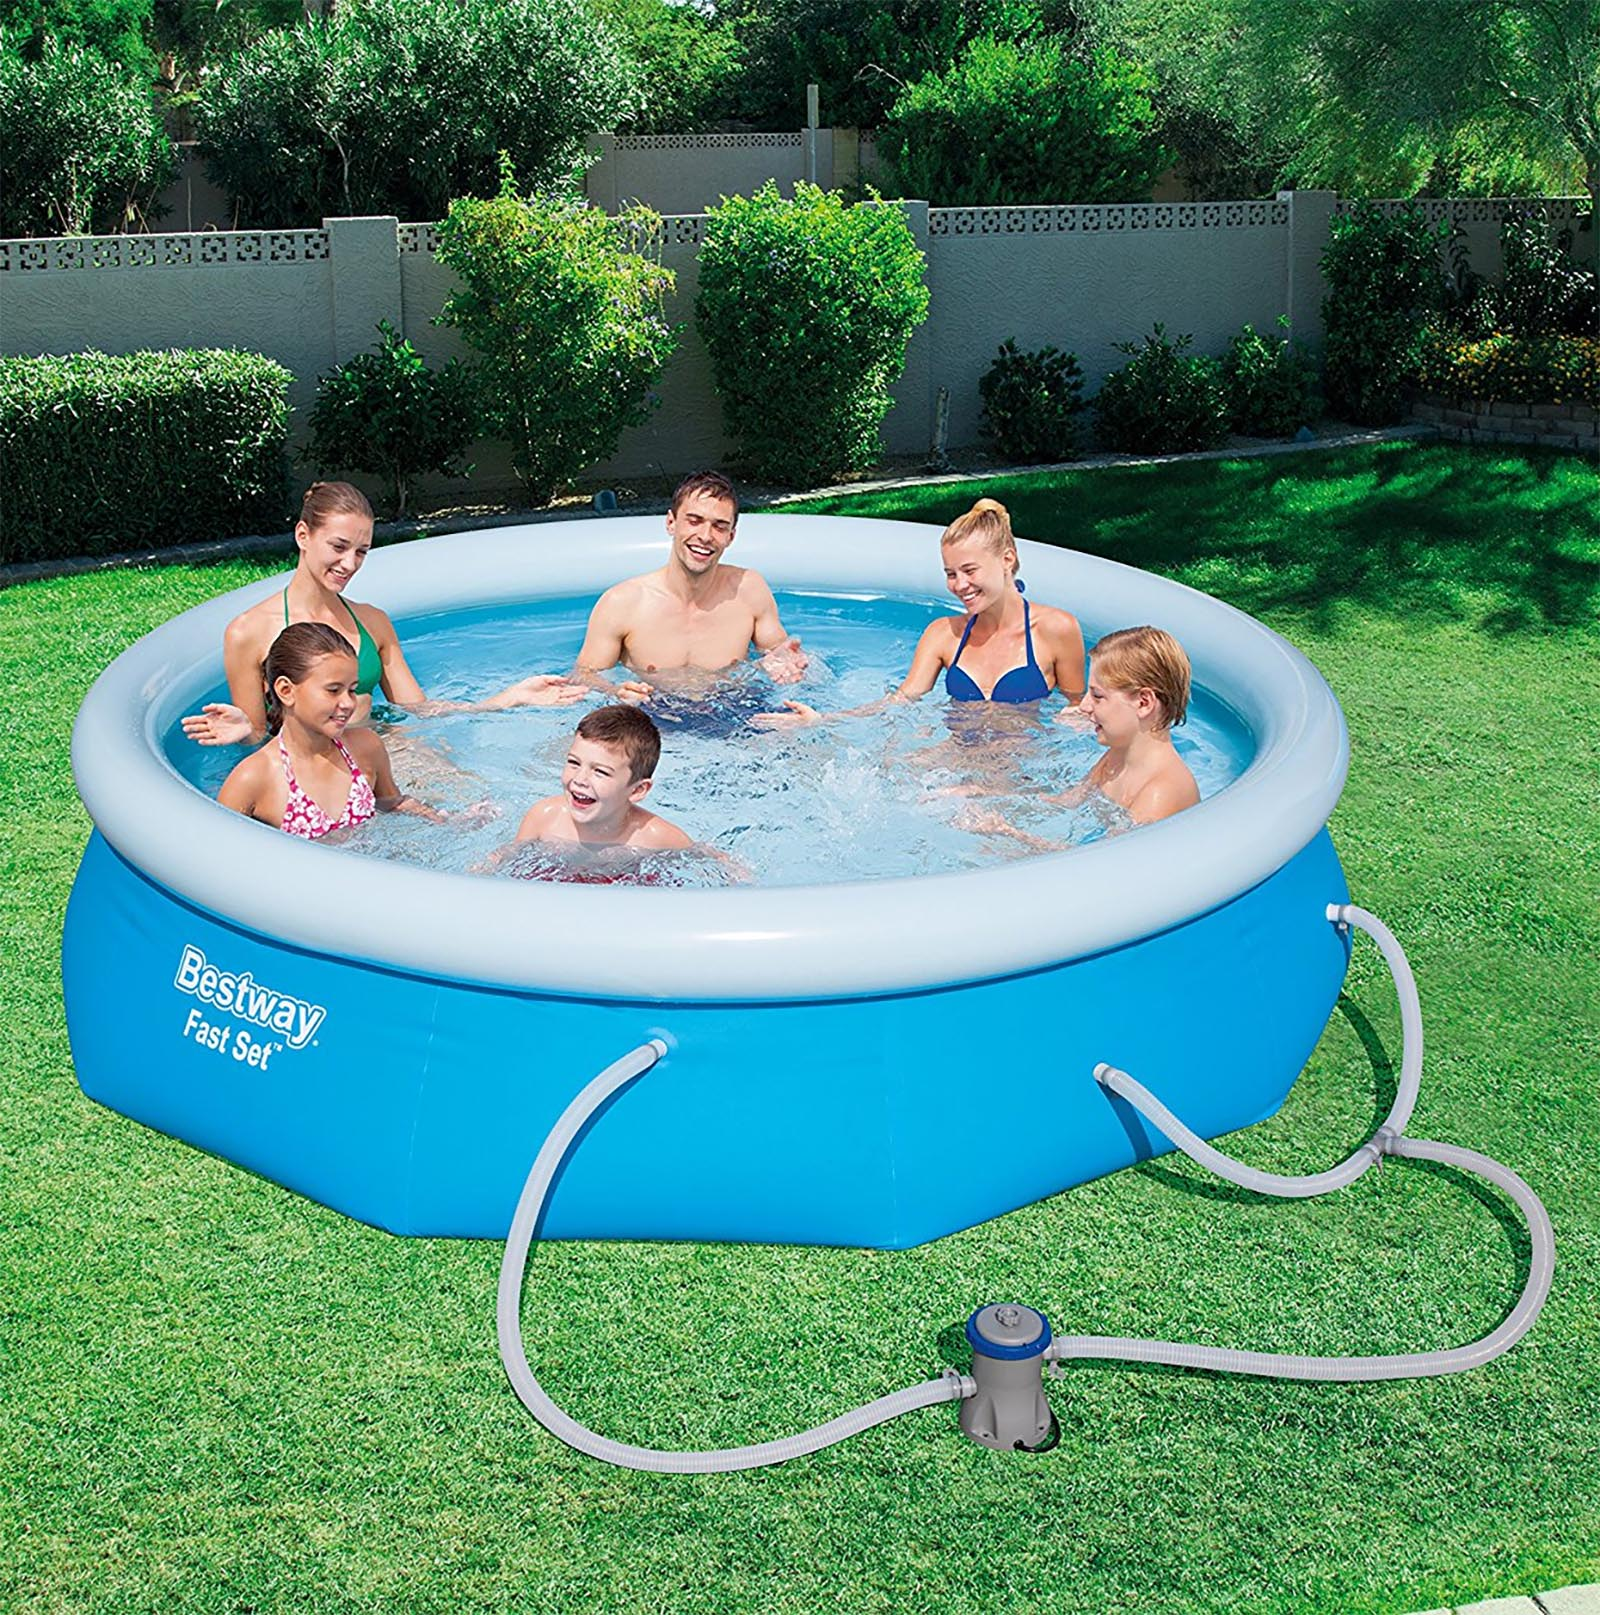 Bestway 10 39 X 30 Fast Set Inflatable Above Ground Swimming Pool W Filter Pump Ebay